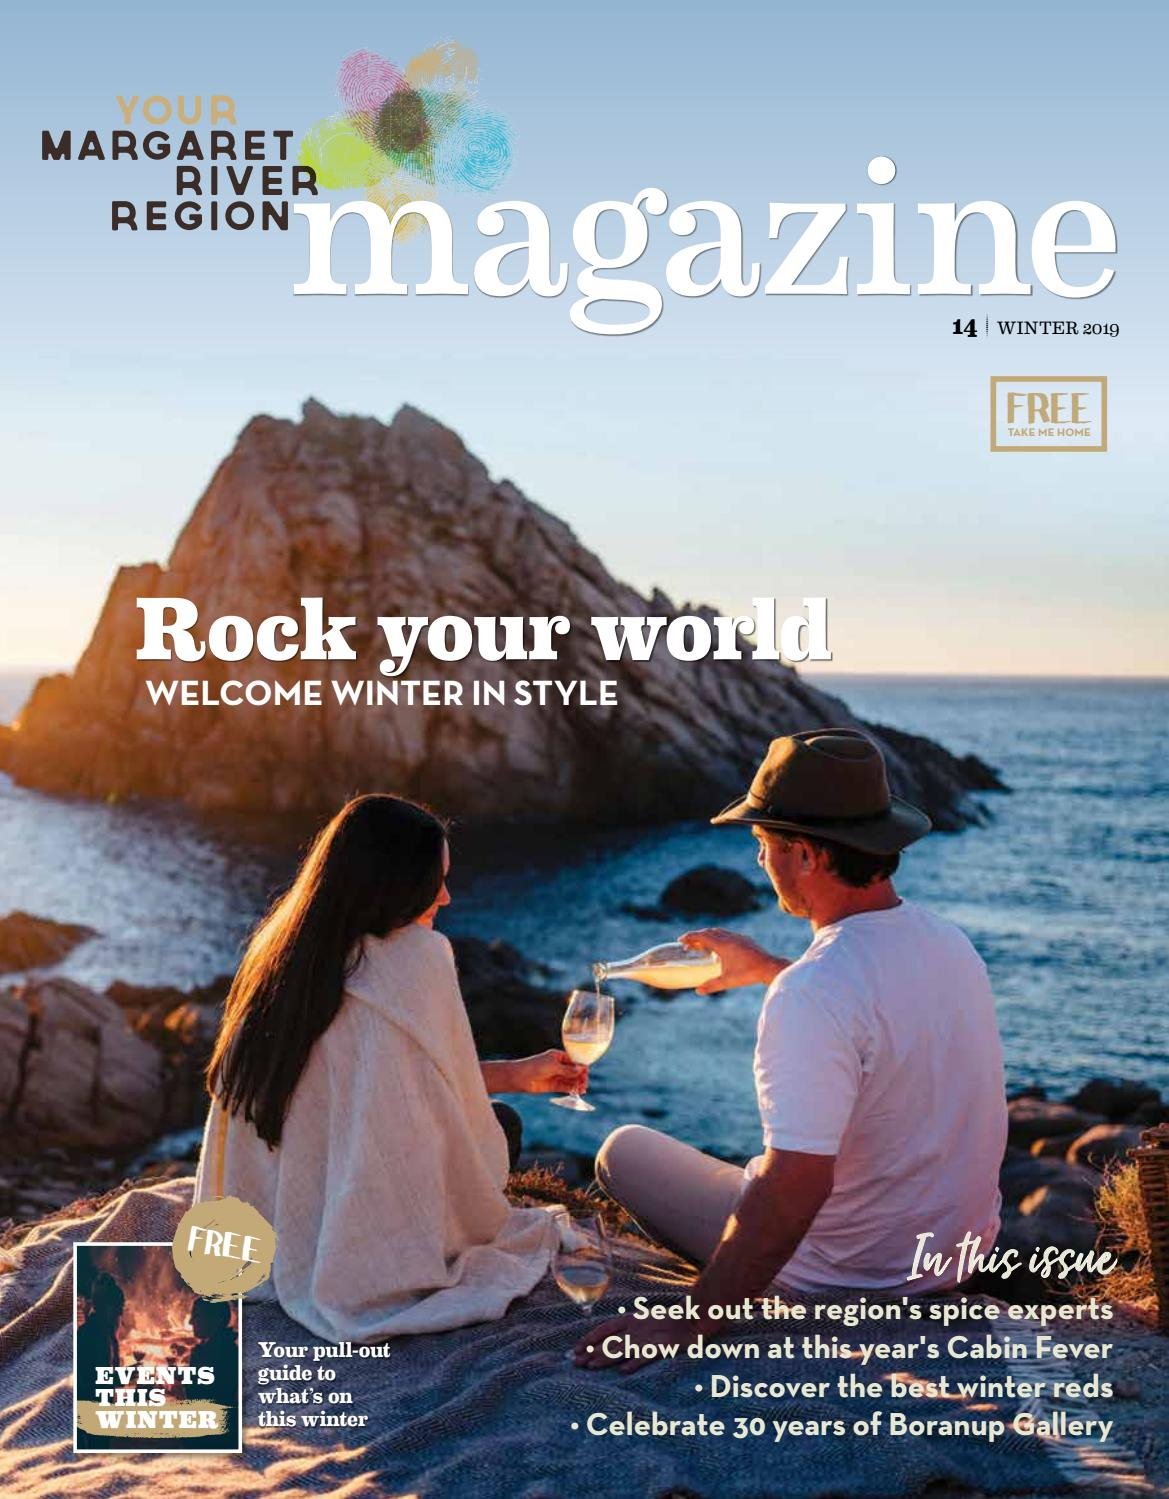 c85e98aef Your Margaret River Region Magazine Winter 2019 by Premium Publishers -  issuu